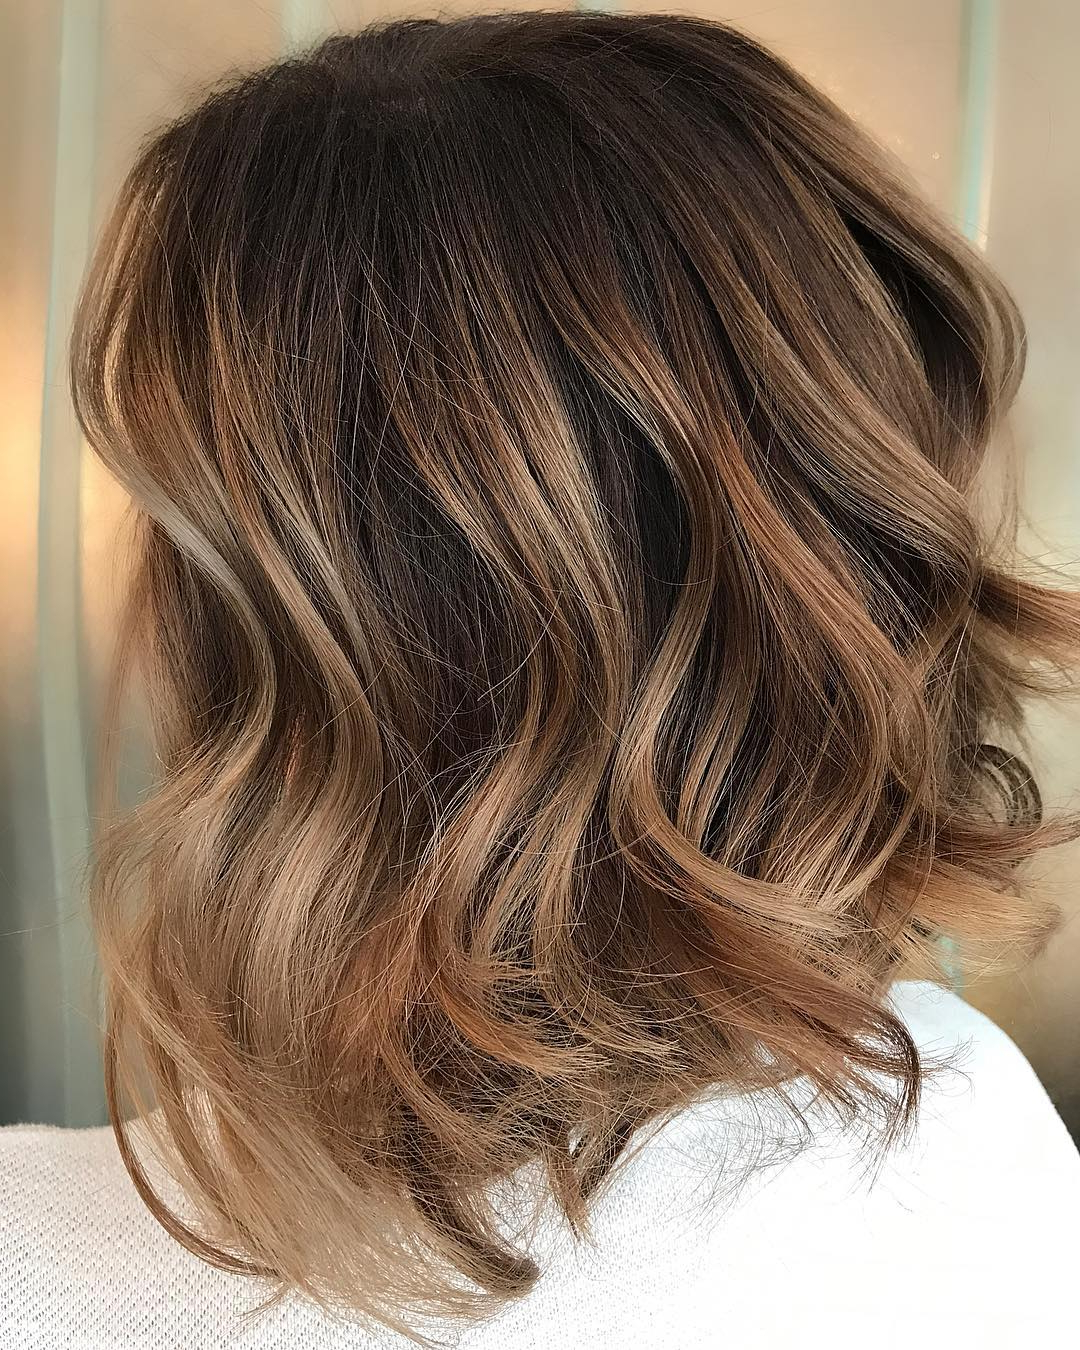 10 Trendy Brown Balayage Hairstyles For Medium Length Hair 2019 In Famous Feathered Medium Hairstyles (View 17 of 20)